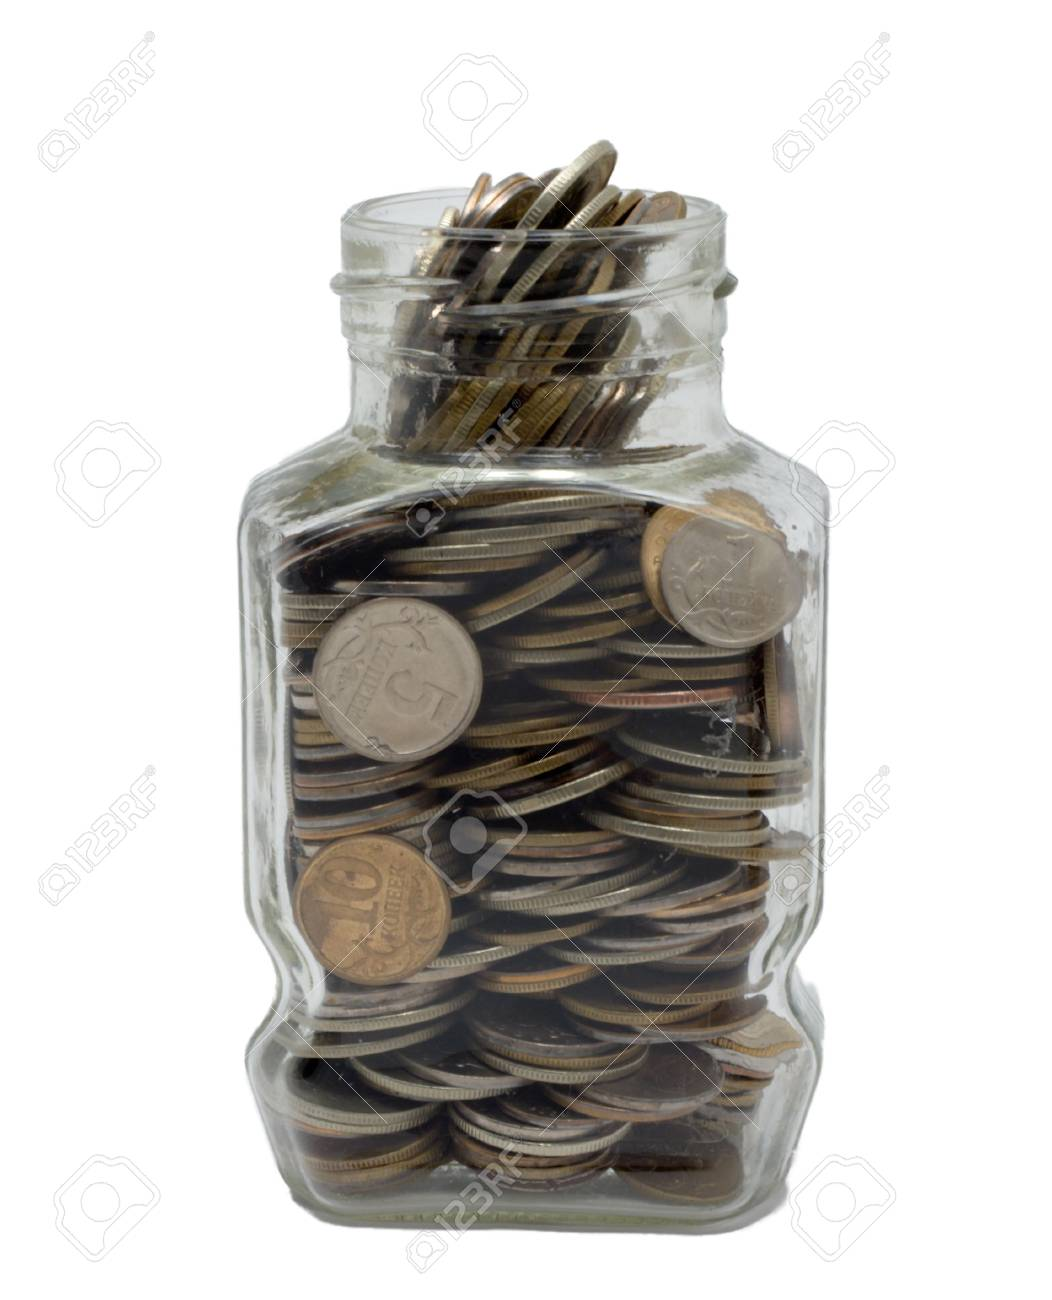 Glass bank with metal coins. Stock Photo - 2678932